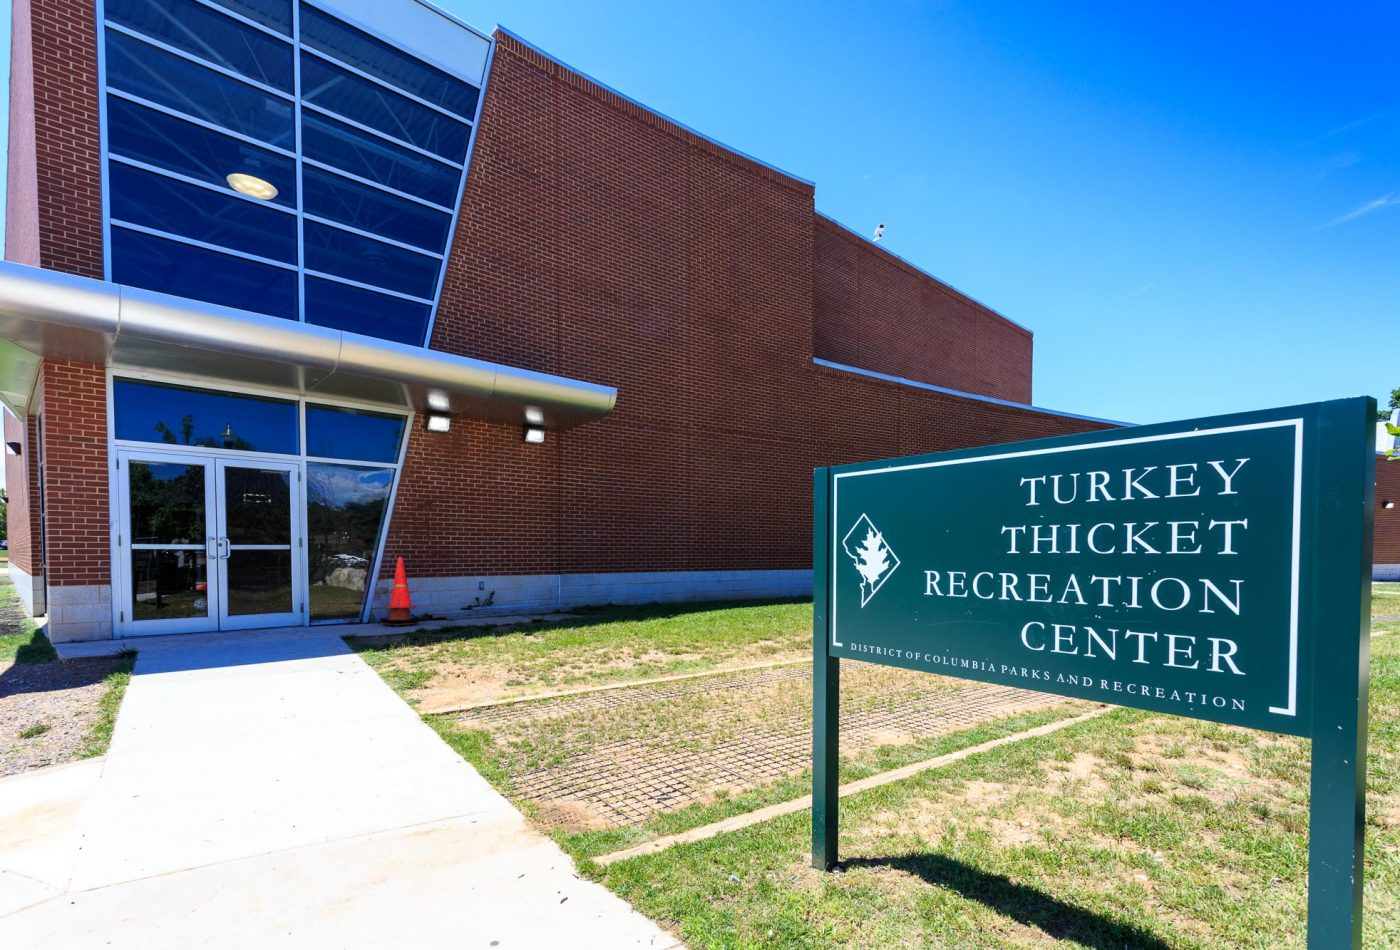 Brookland Neighborhood - Turkey Thicket Rec Center